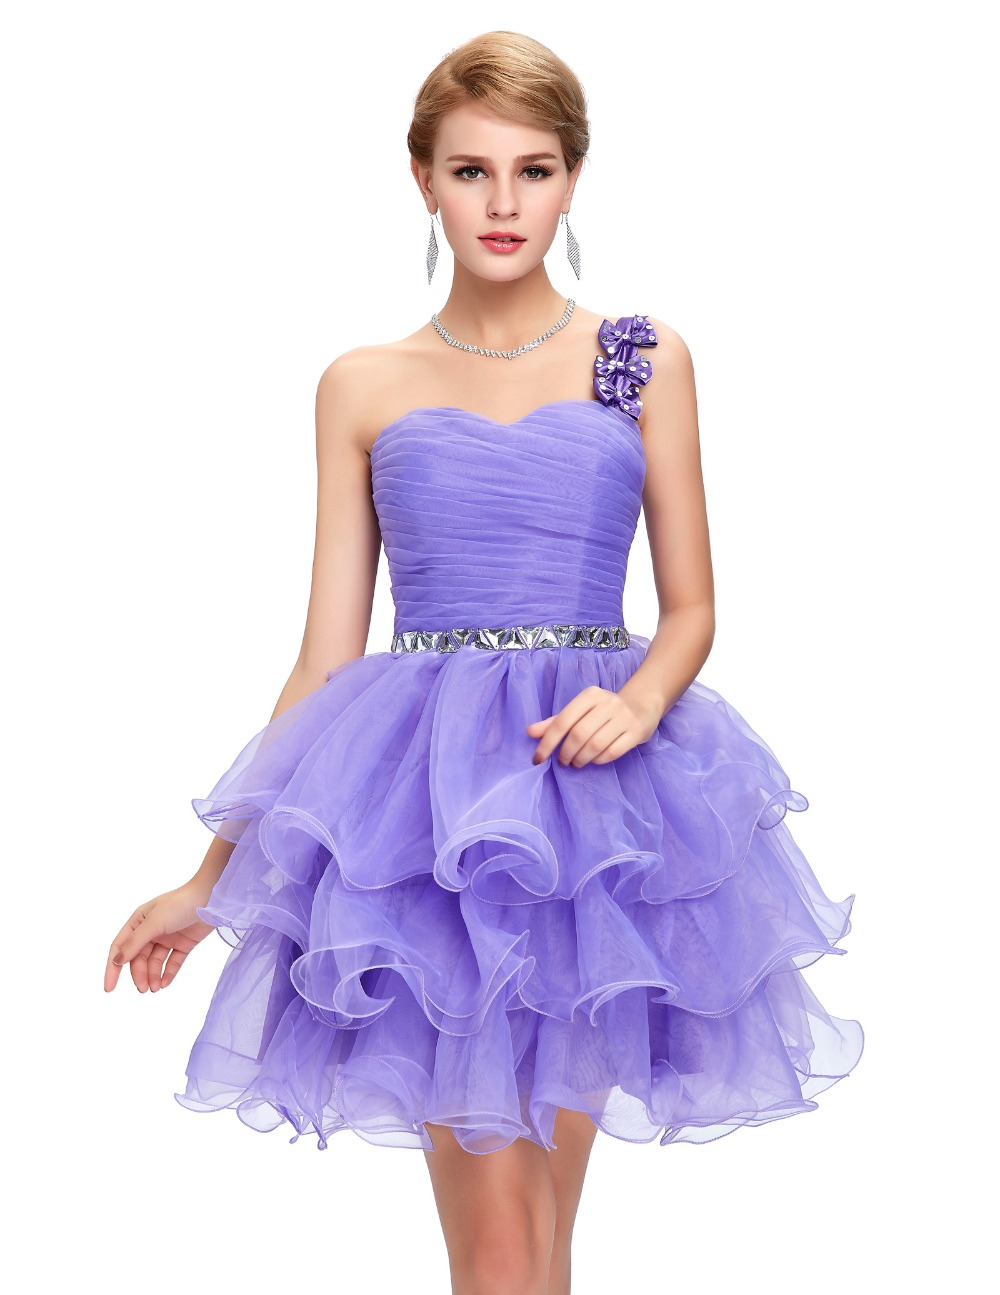 Tutu Prom Dresses - Holiday Dresses